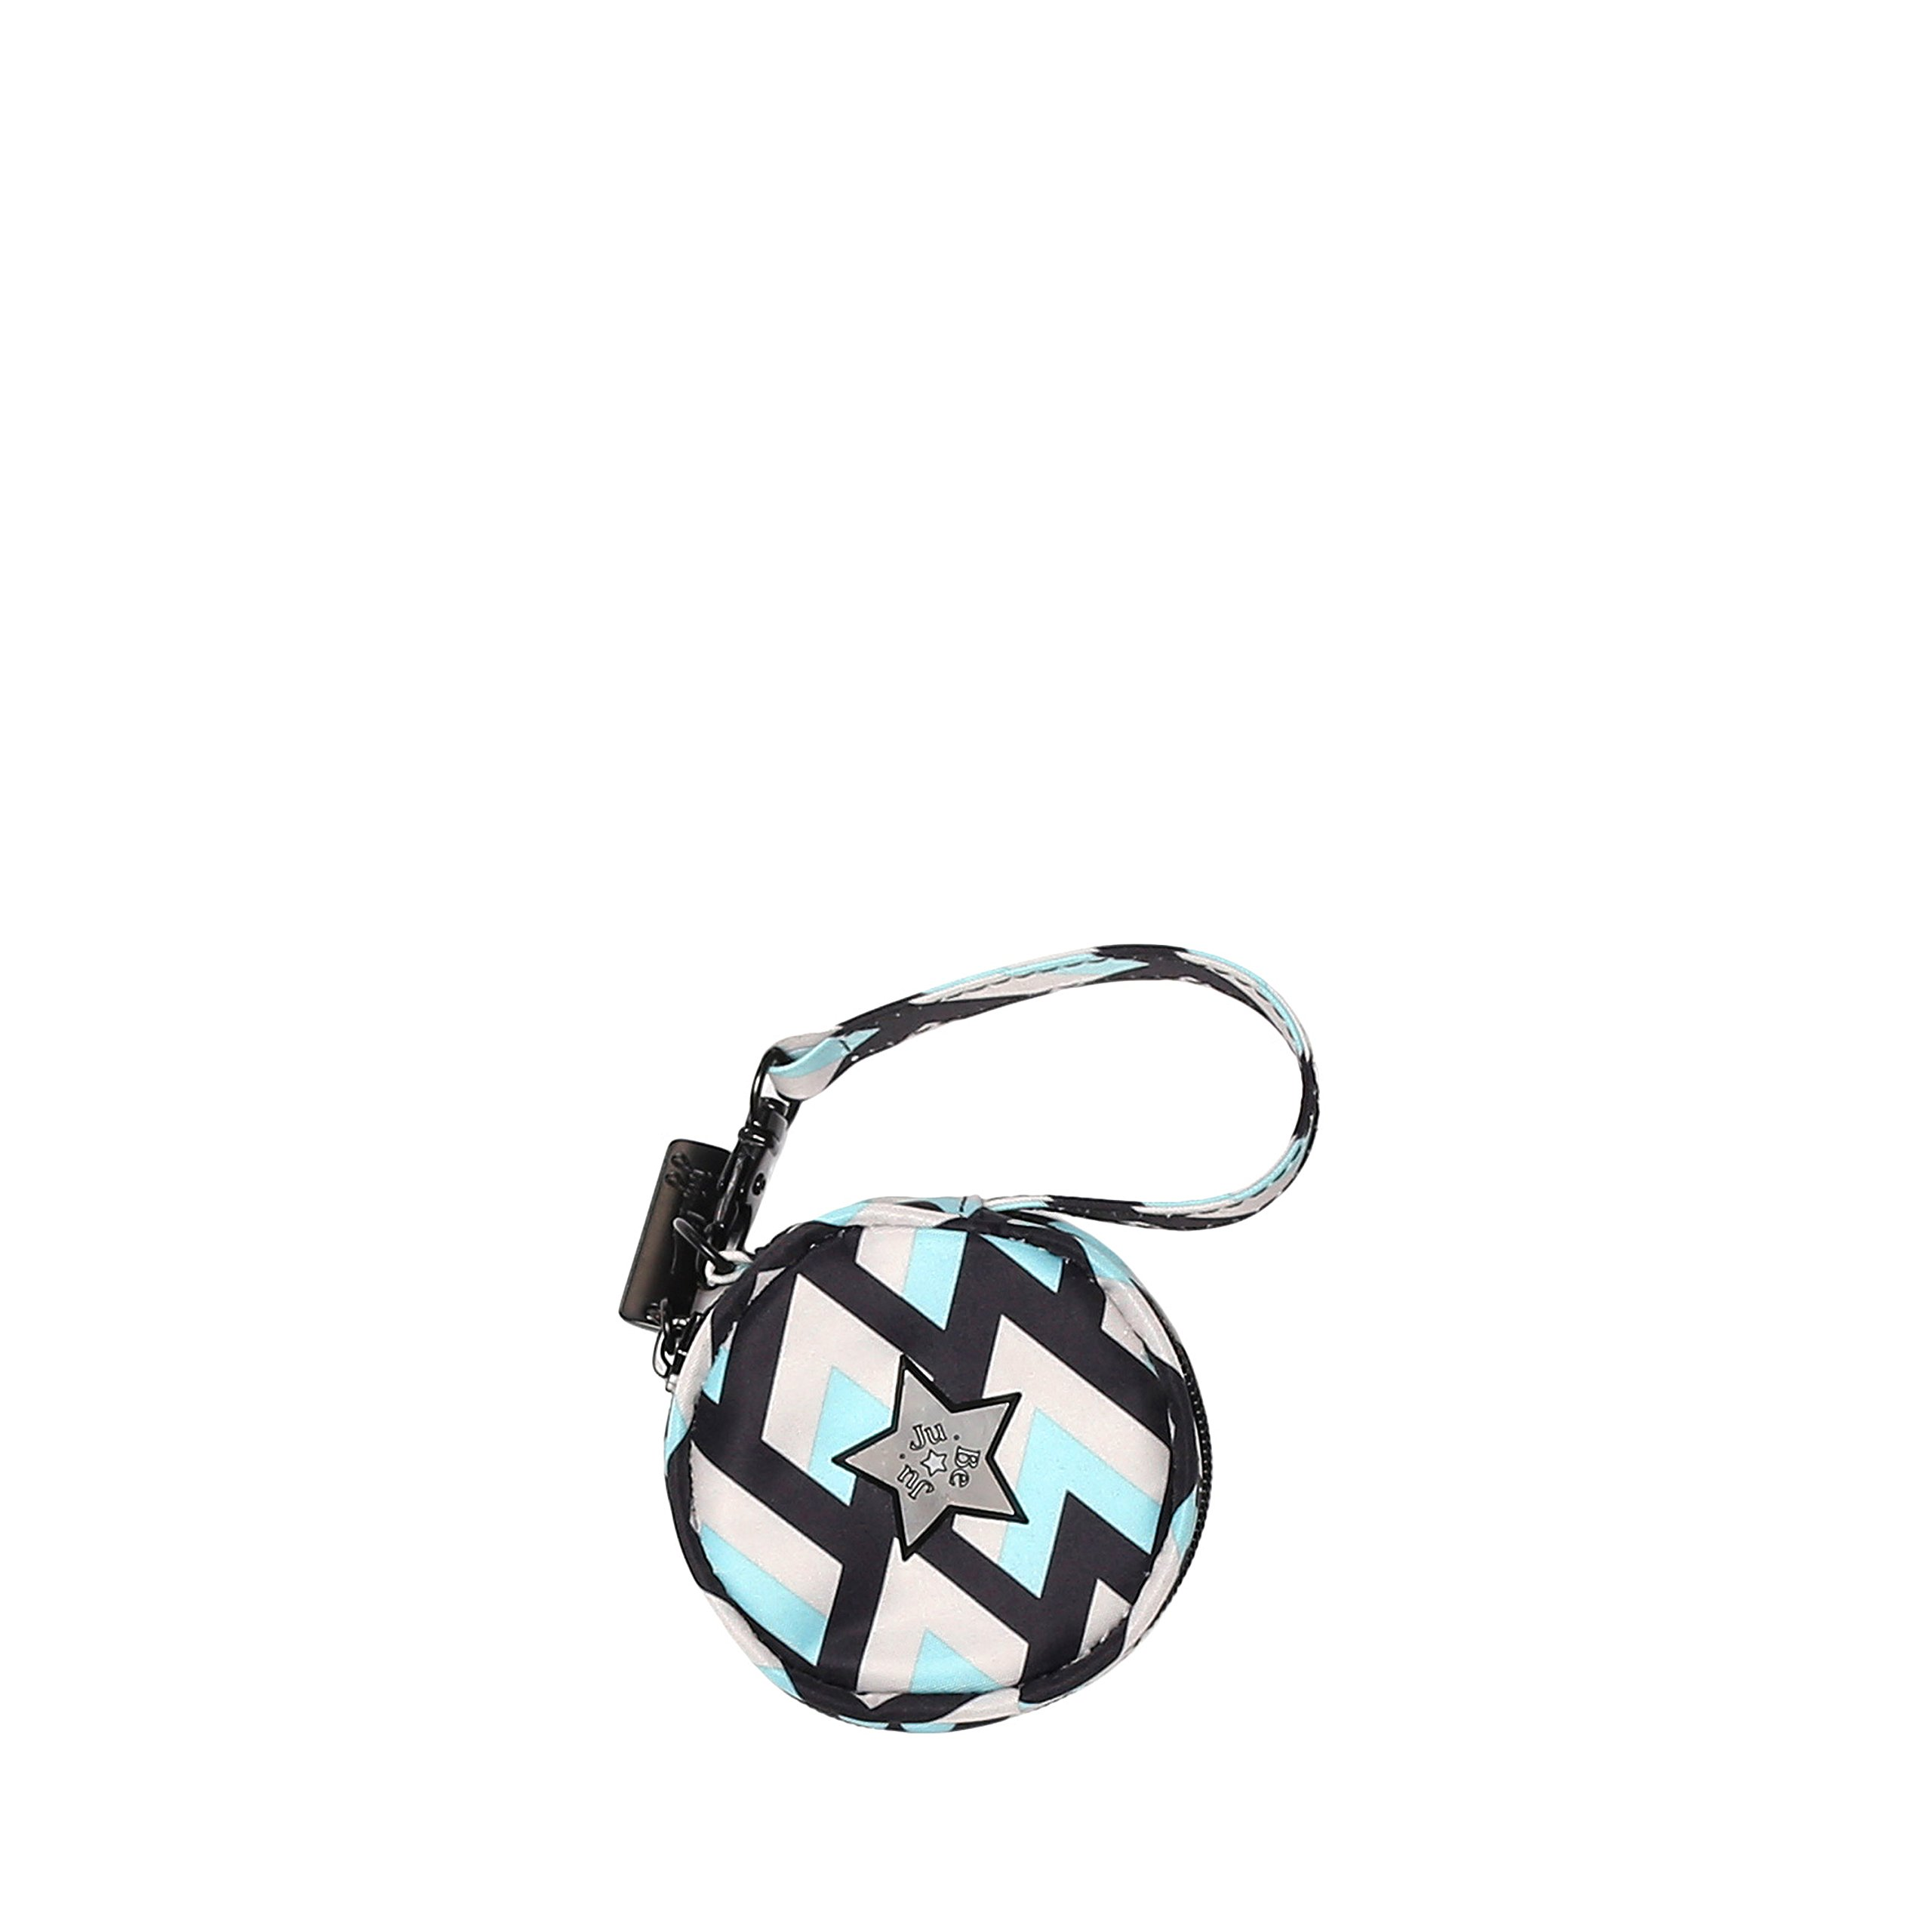 Ju-Ju-Be Onyx Collection Paci Pod Pacifier Holder, Black Diamond